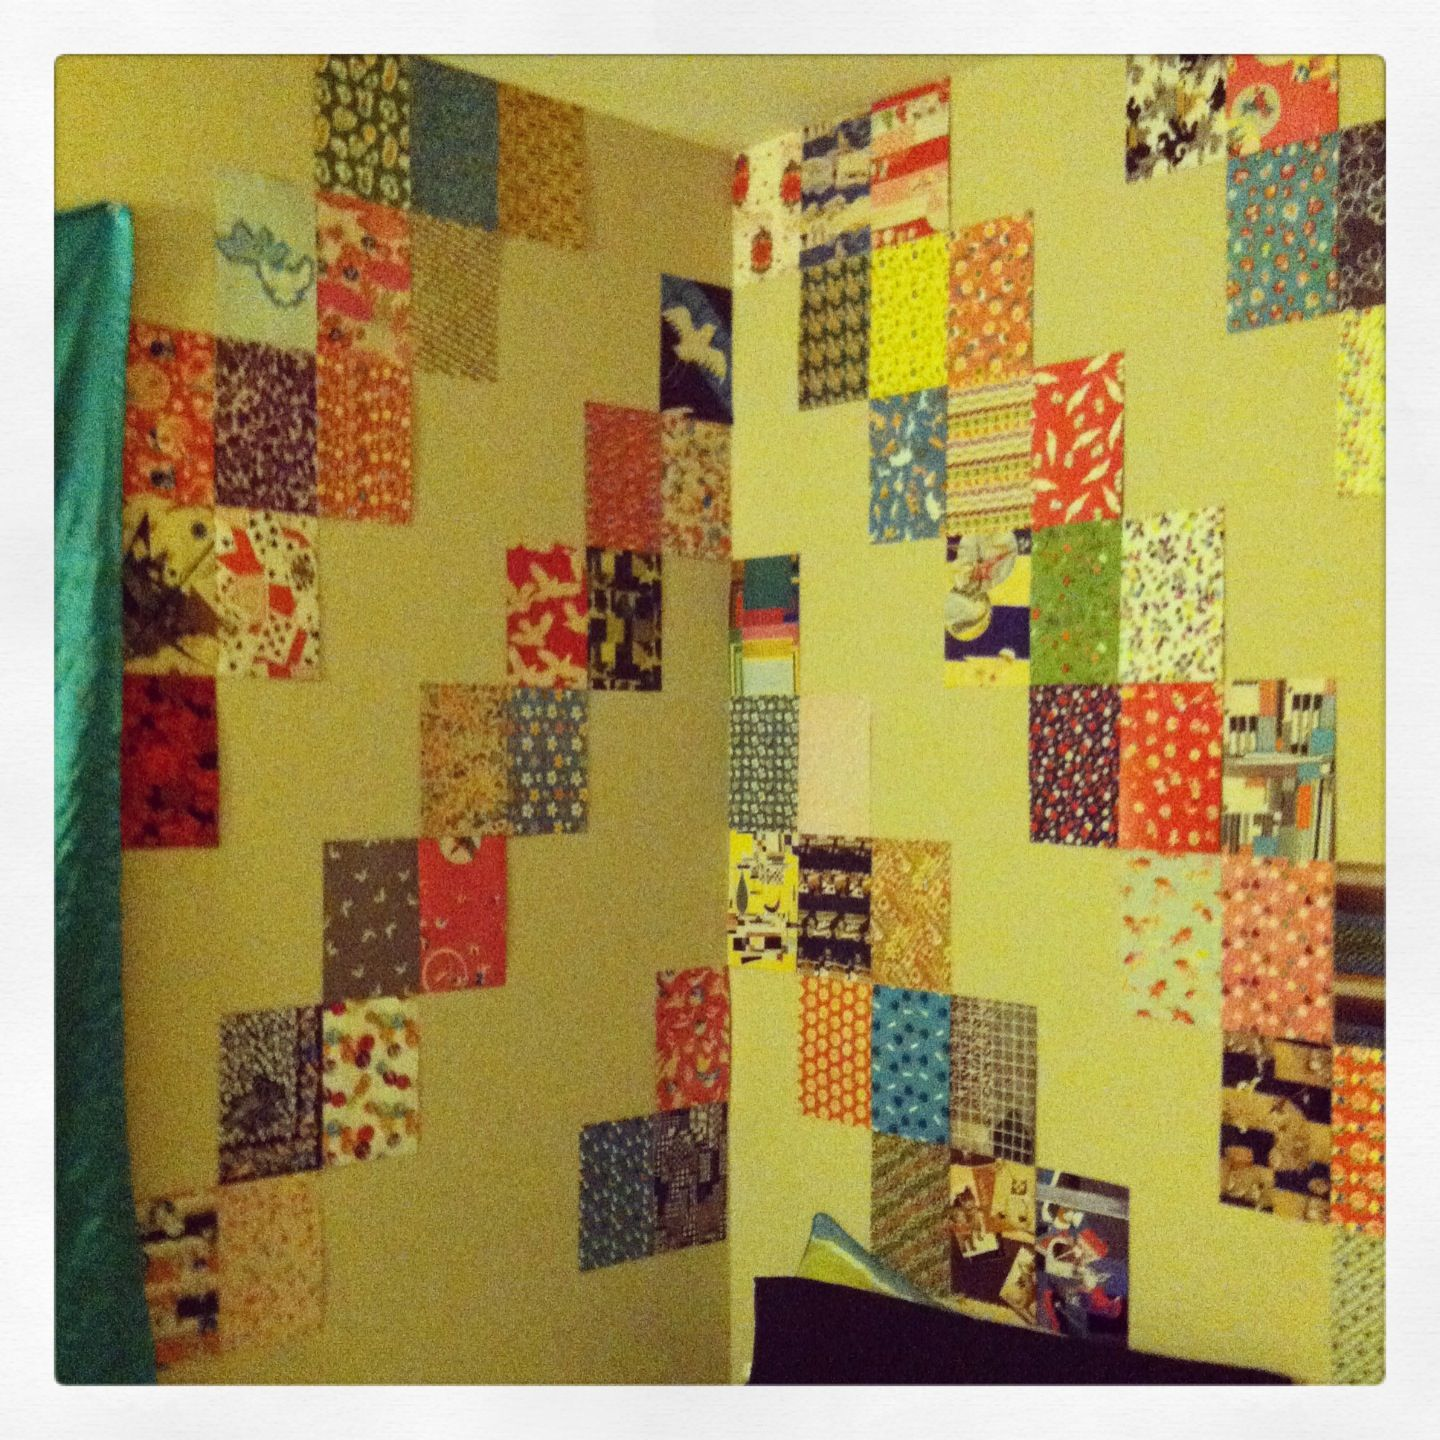 Cheap Apartment Wall Art - cut pages from a book of vintage fabric ...